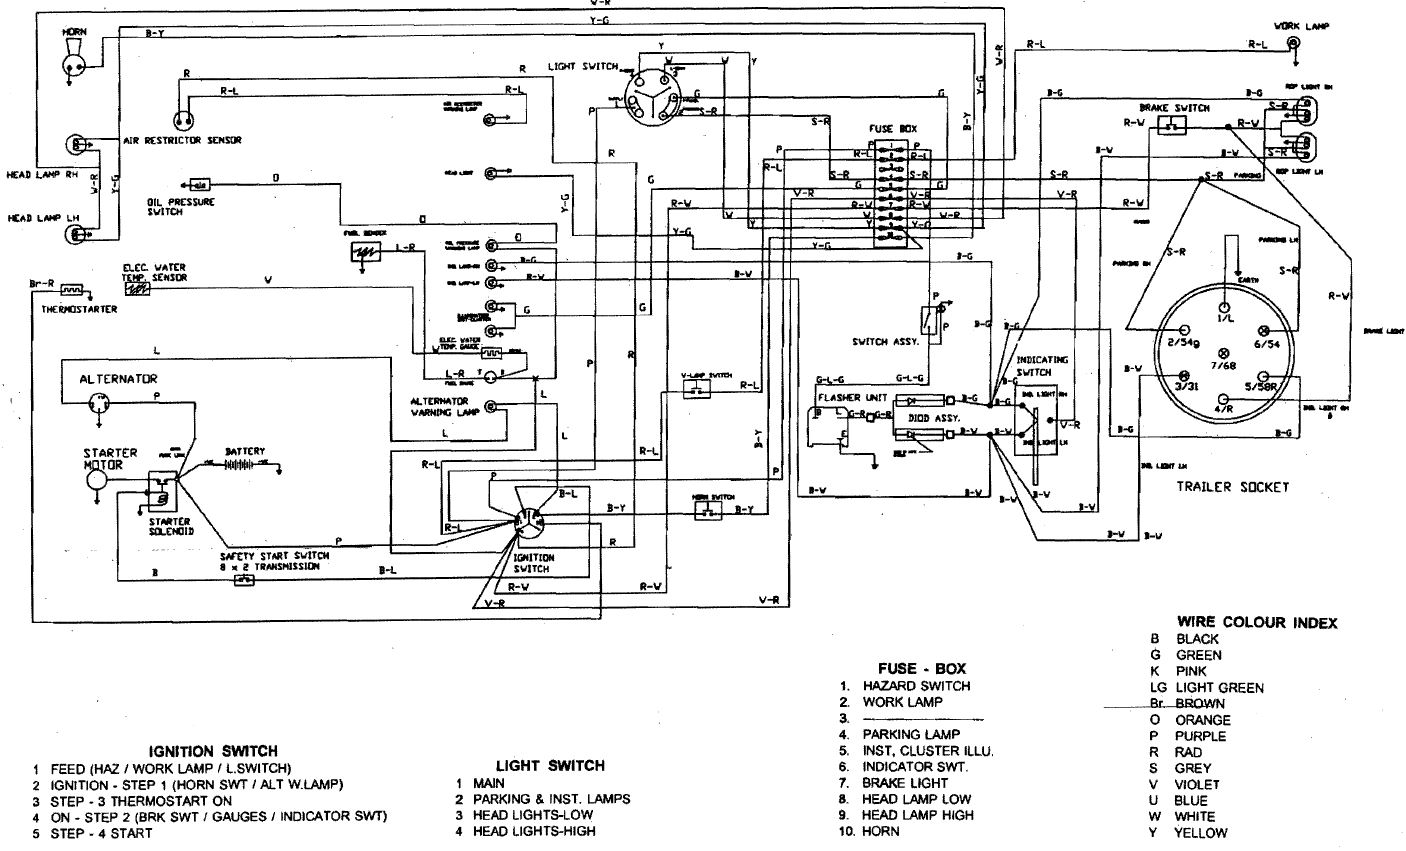 hight resolution of ignition switch wiring diagram